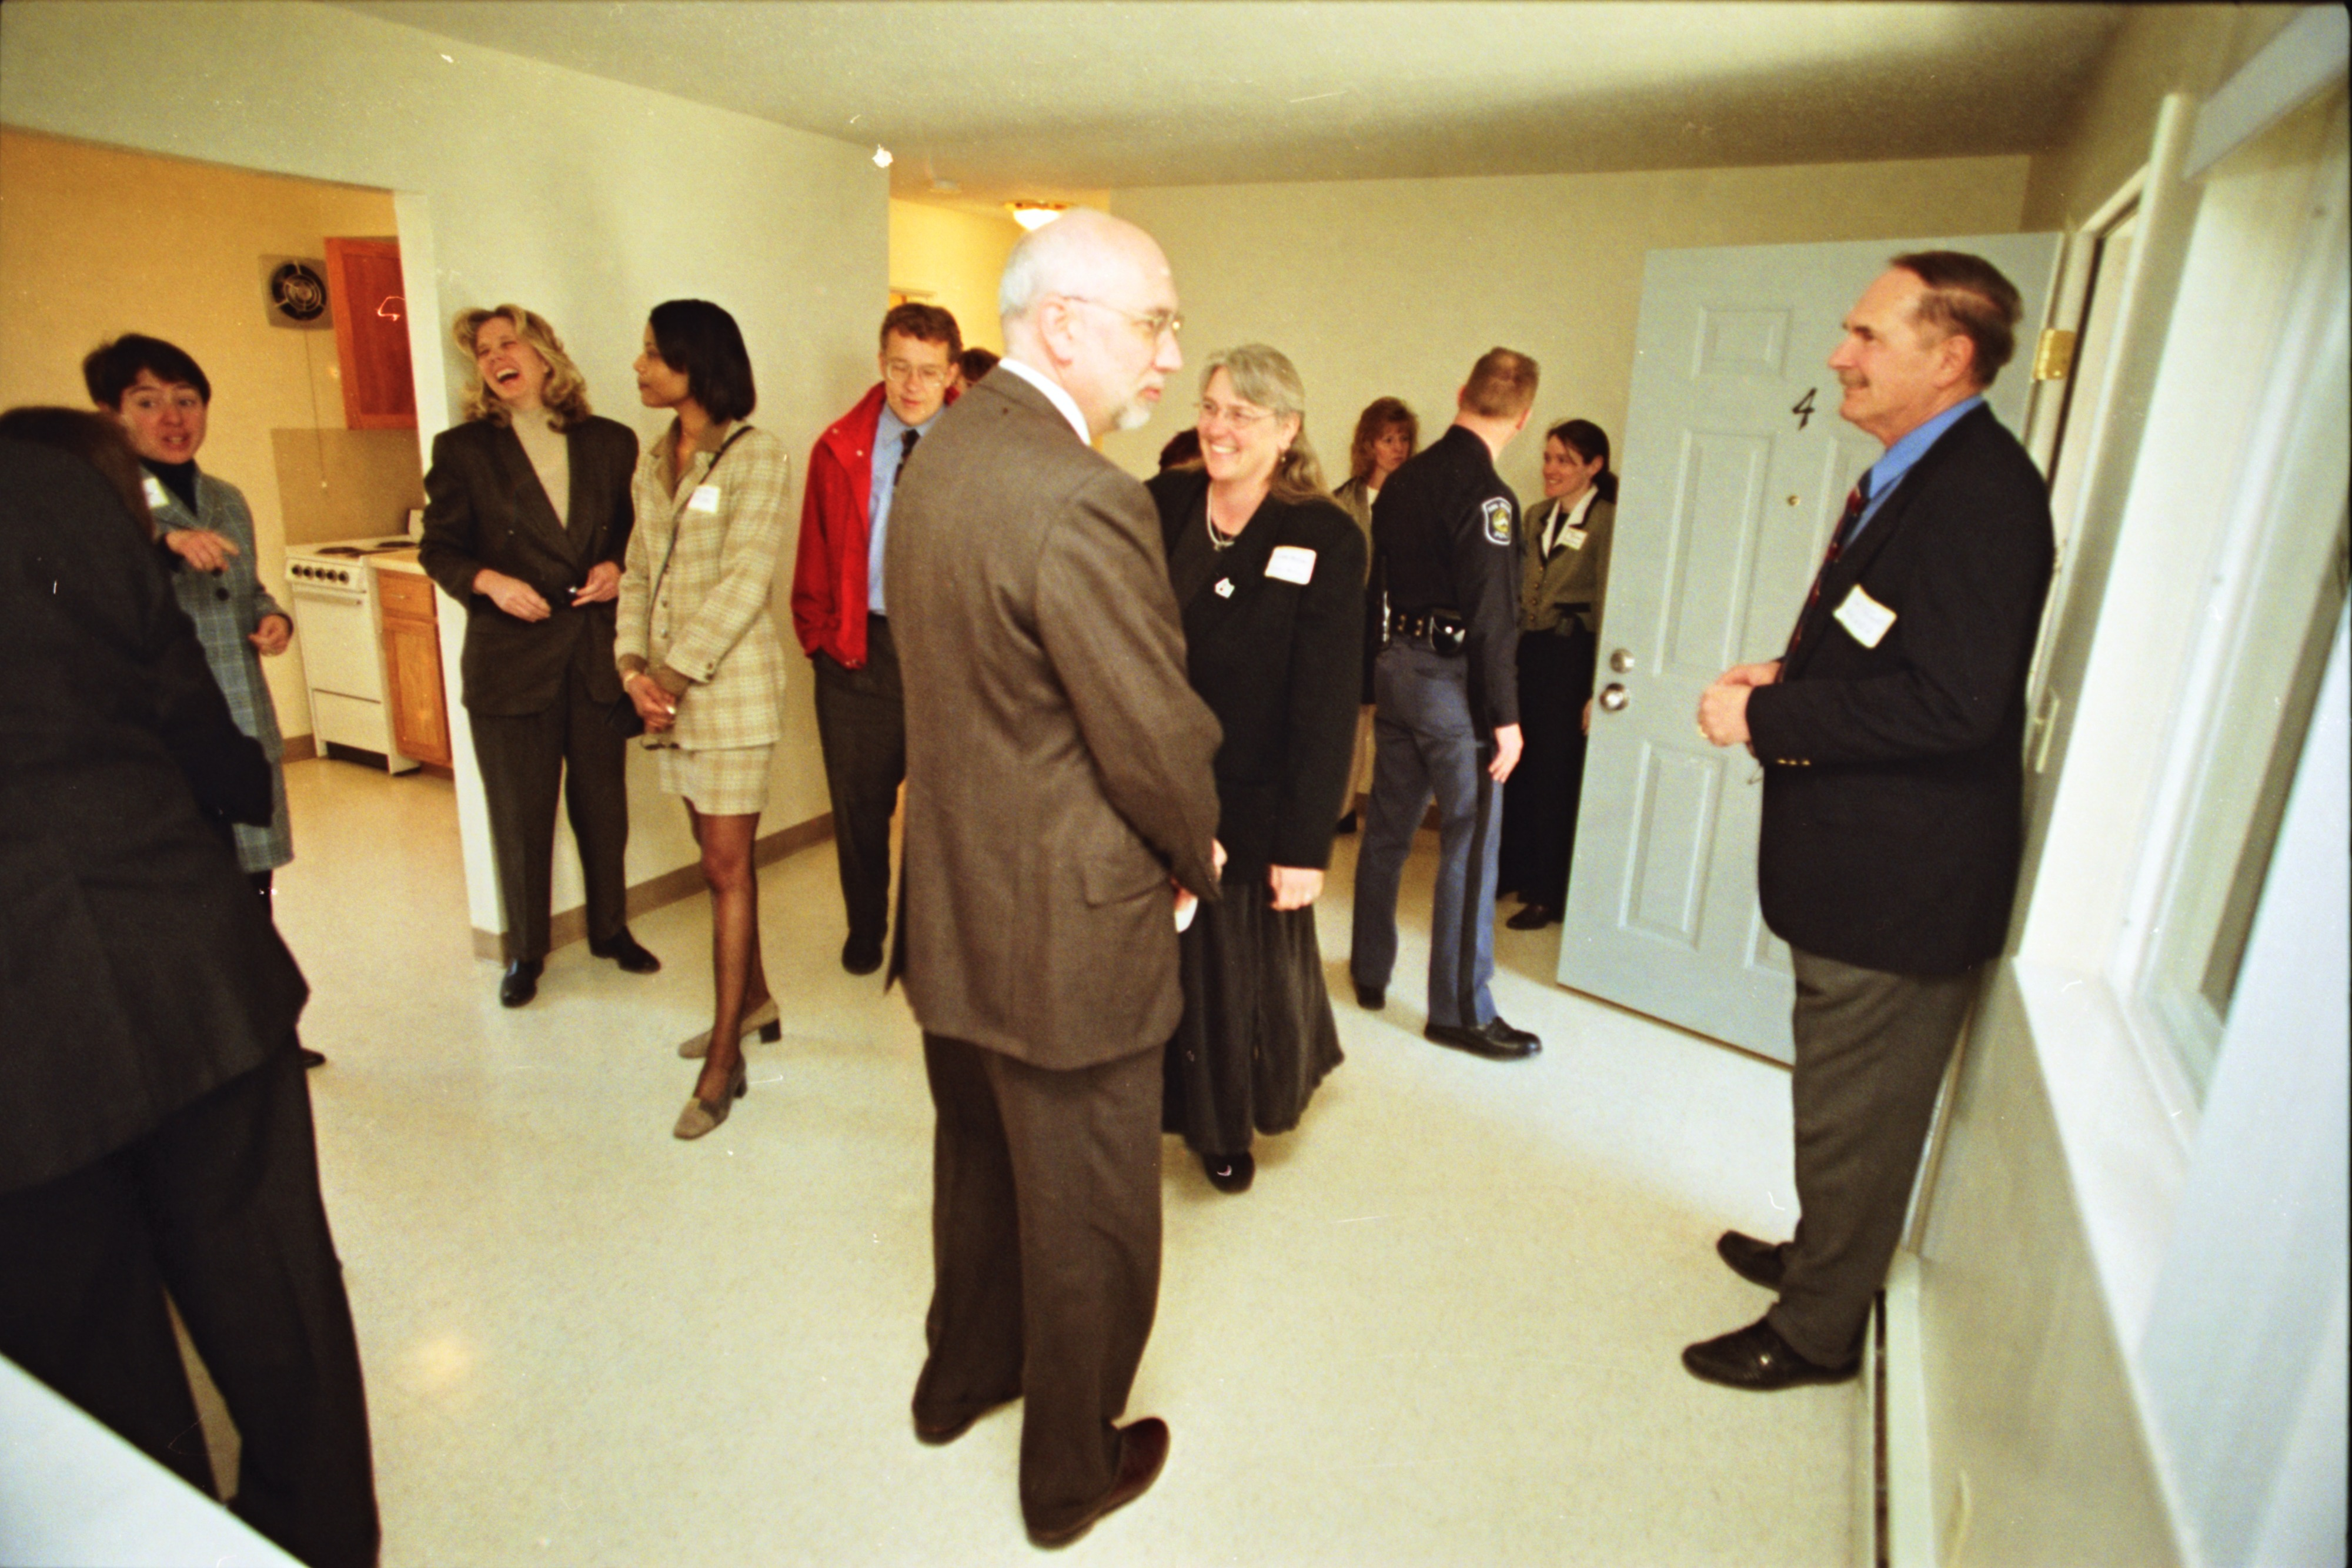 Avalon Housing Holds Open House at Arbordale Apartments Following Their Renovation, March 1999 image